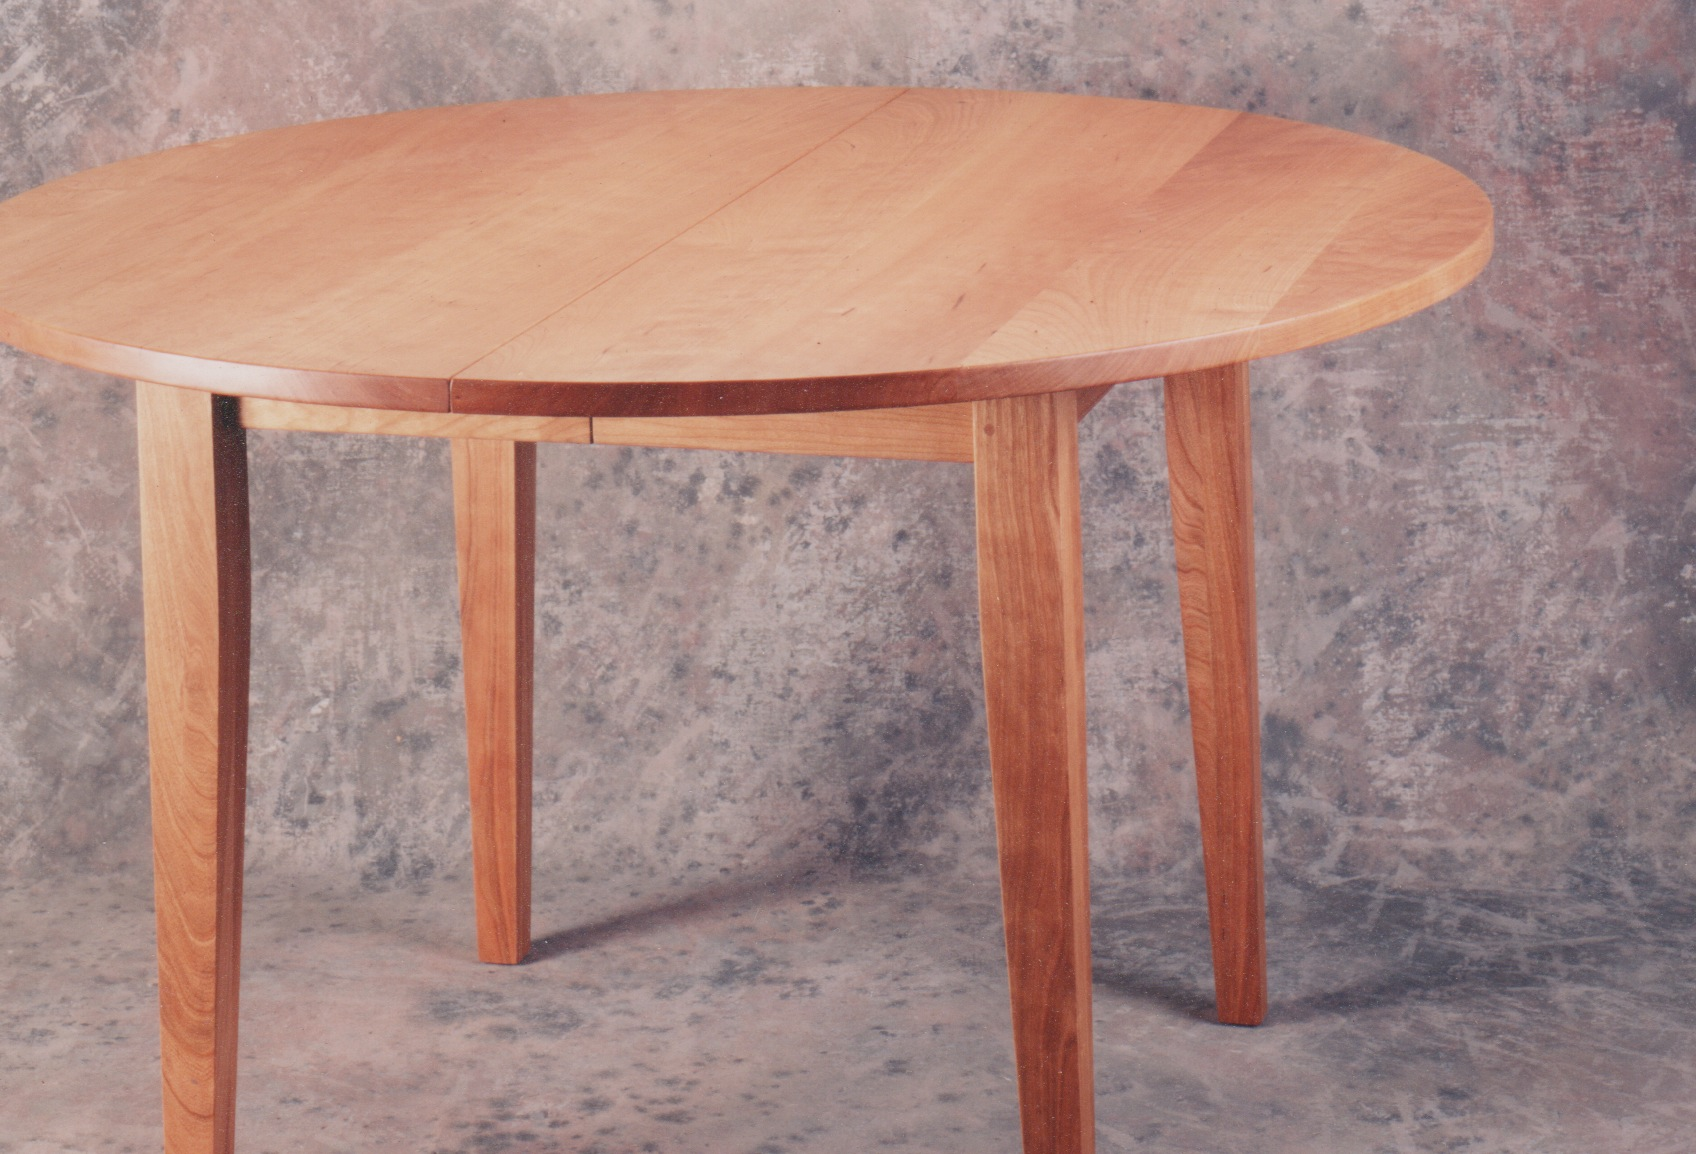 42 round table. Round Cherry Shaker Style Dining Table 42